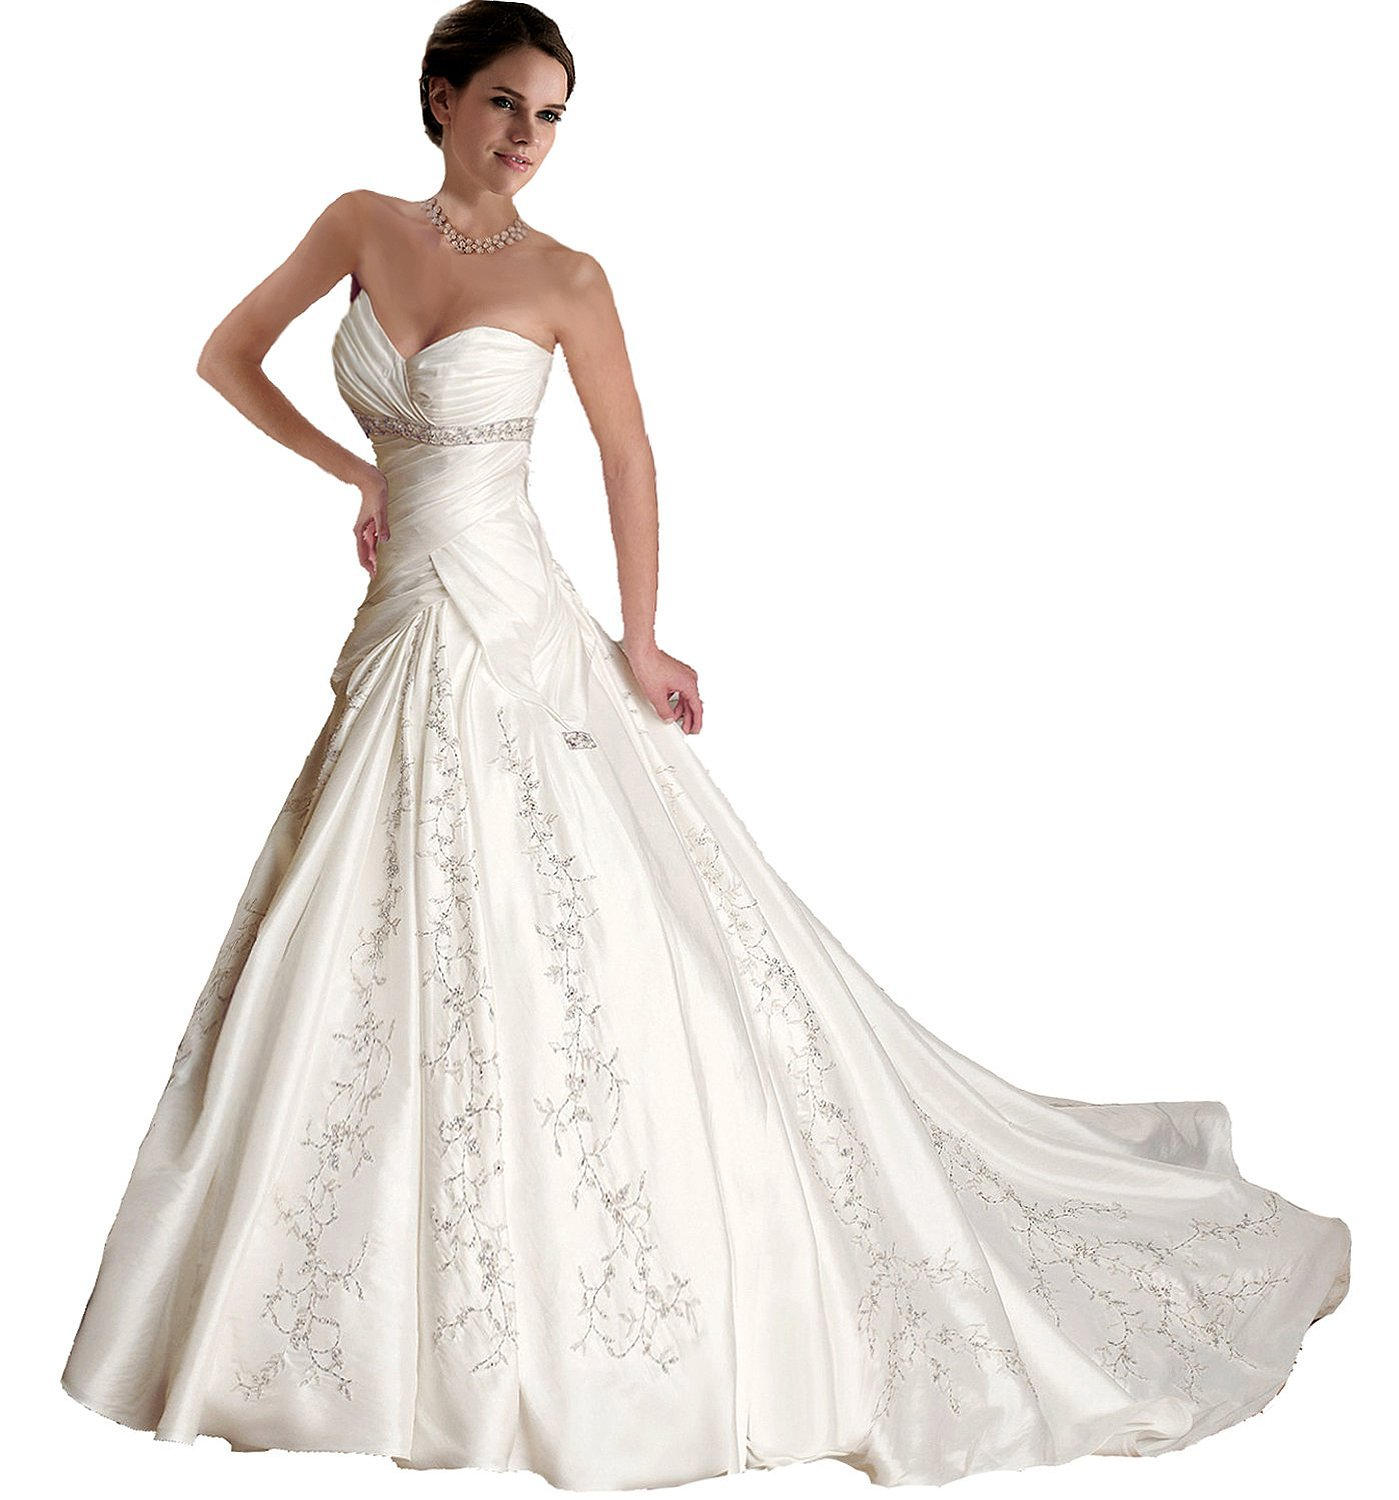 Pretty wedding dresses for under 500 time for the holidays for Wedding dresses for 500 or less